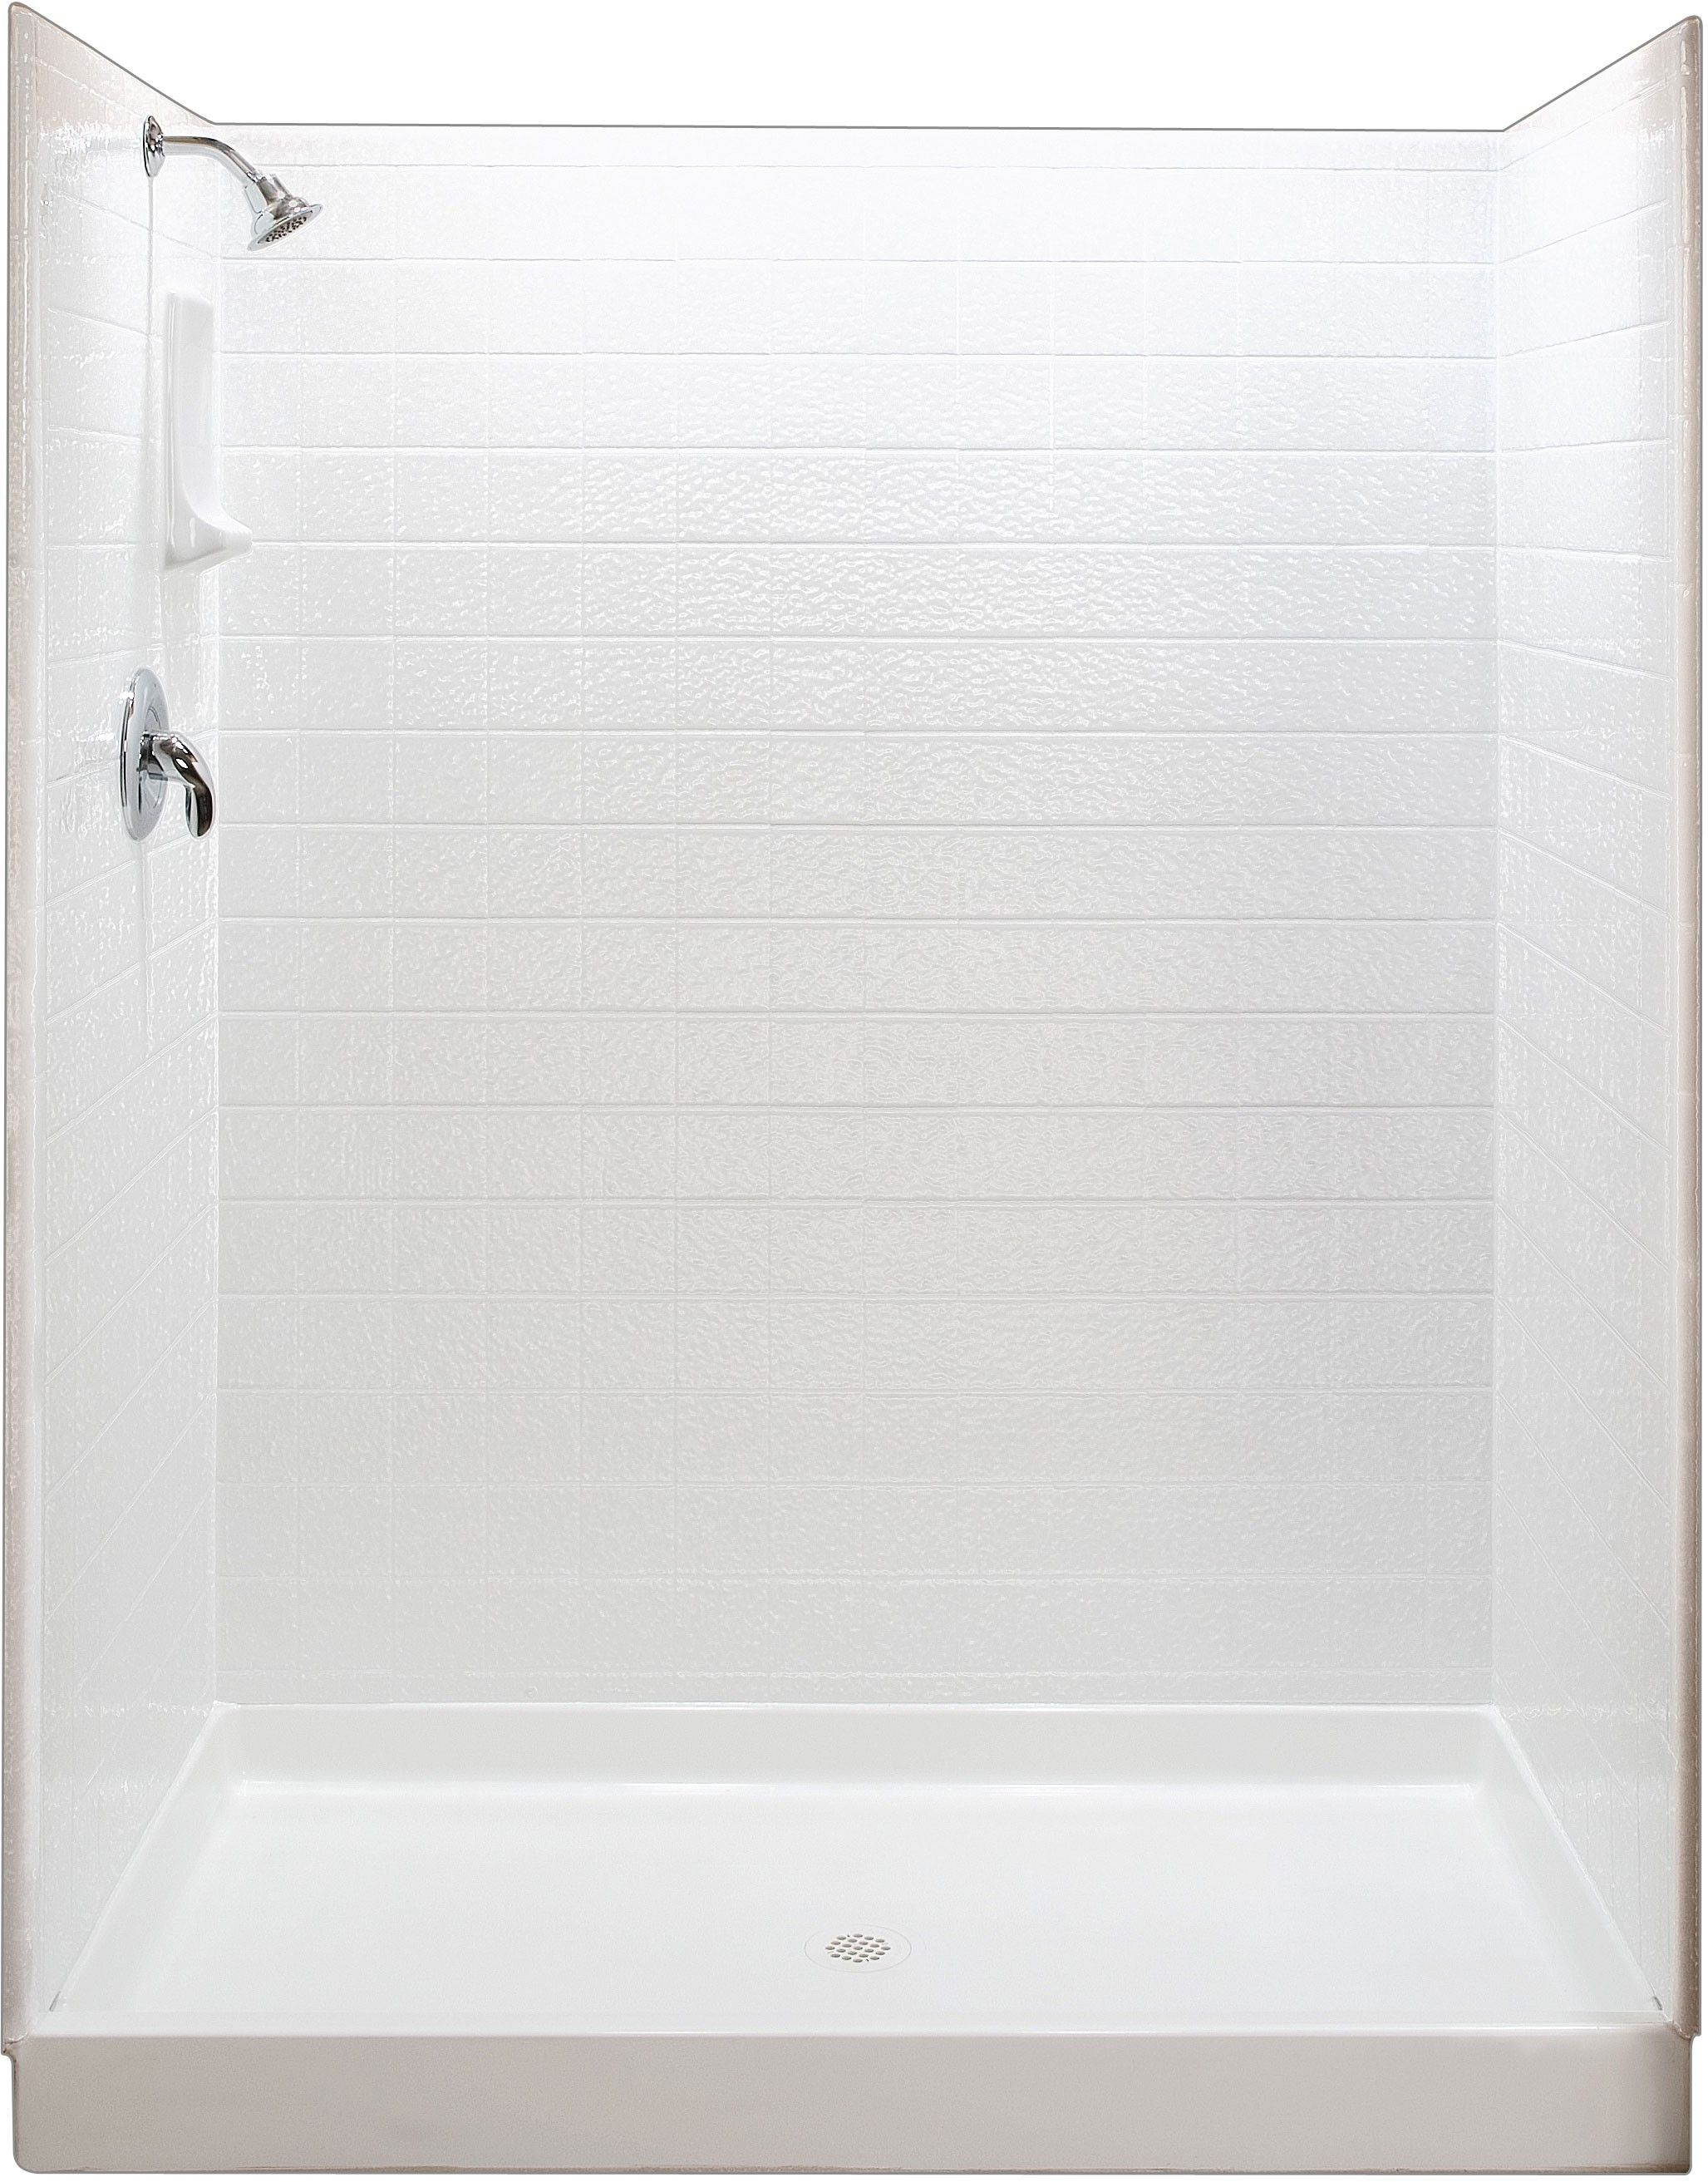 3-Wall Shower Enclosure | diy | Pinterest | Shower enclosure, Bath ...